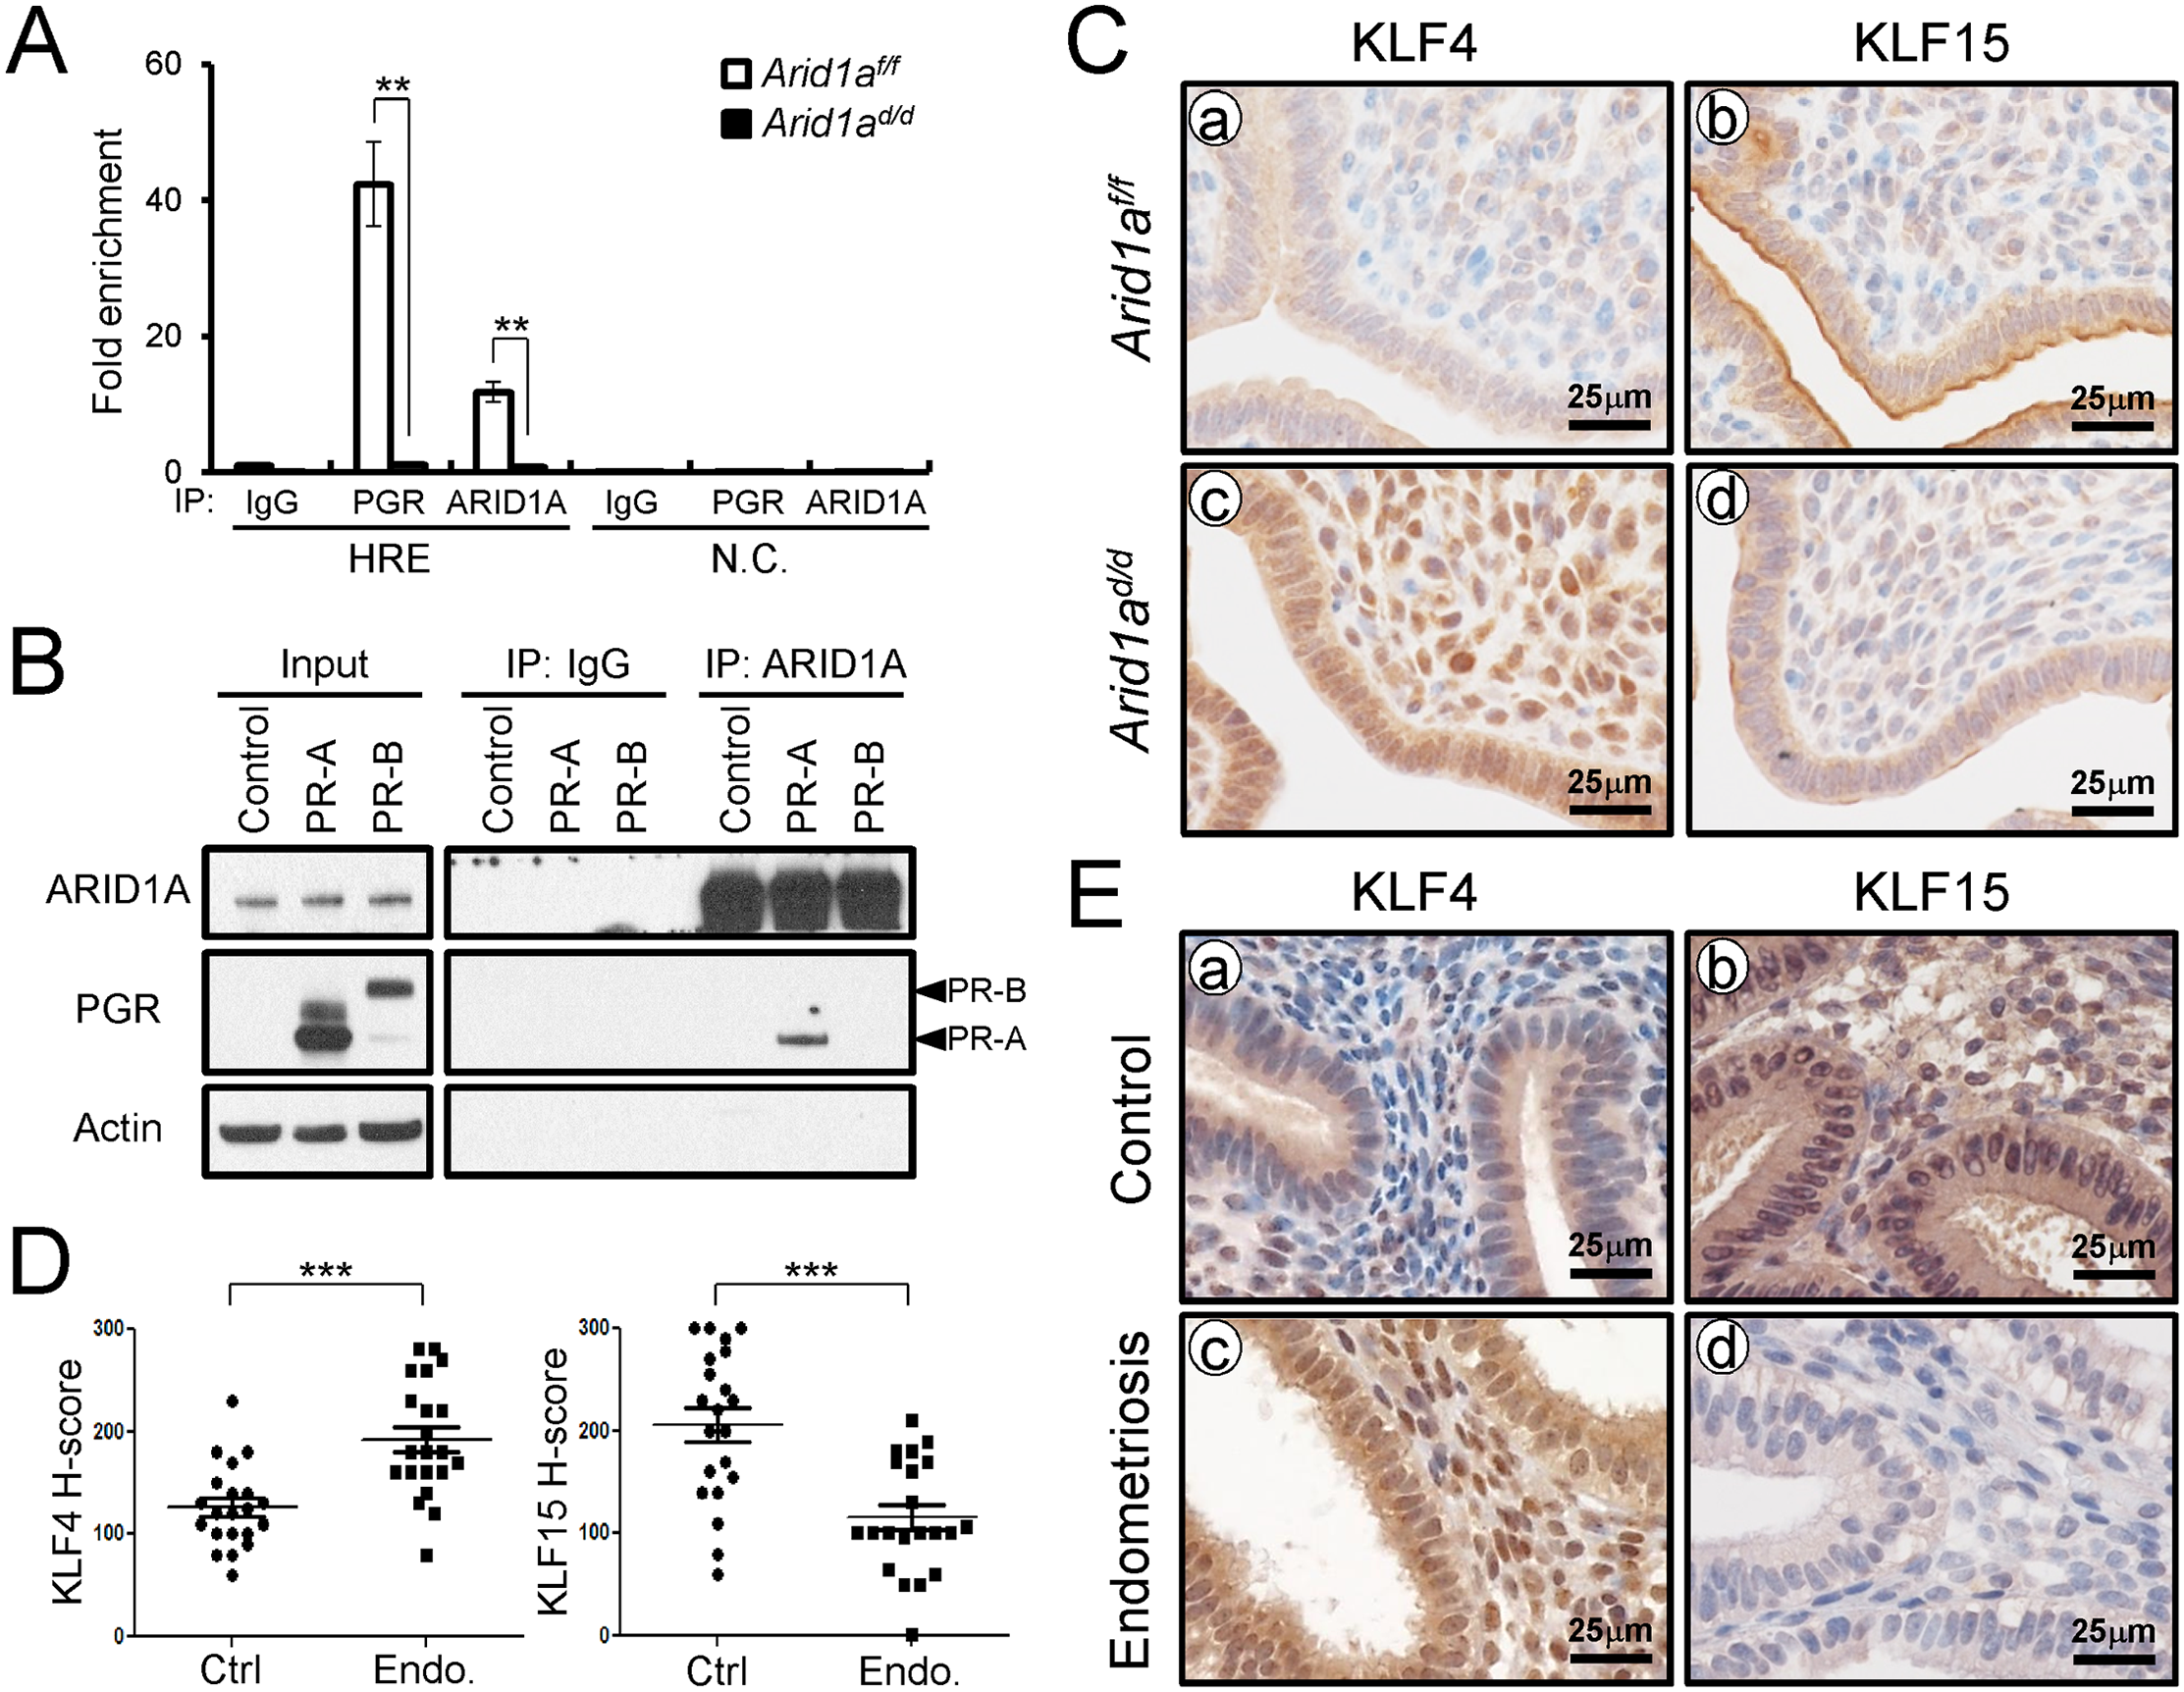 ARID1A regulates epithelial proliferation via modulating KLF15 expression with PGR (A) ChIP assay performed with uterine chromatin isolated <i>Arid1a</i><sup><i>f/f</i></sup> and <i>Arid1a</i><sup><i>d/d</i></sup> mice at 3.5 dpc using IgG, PGR, and ARID1A antibodies followed by qPCR.